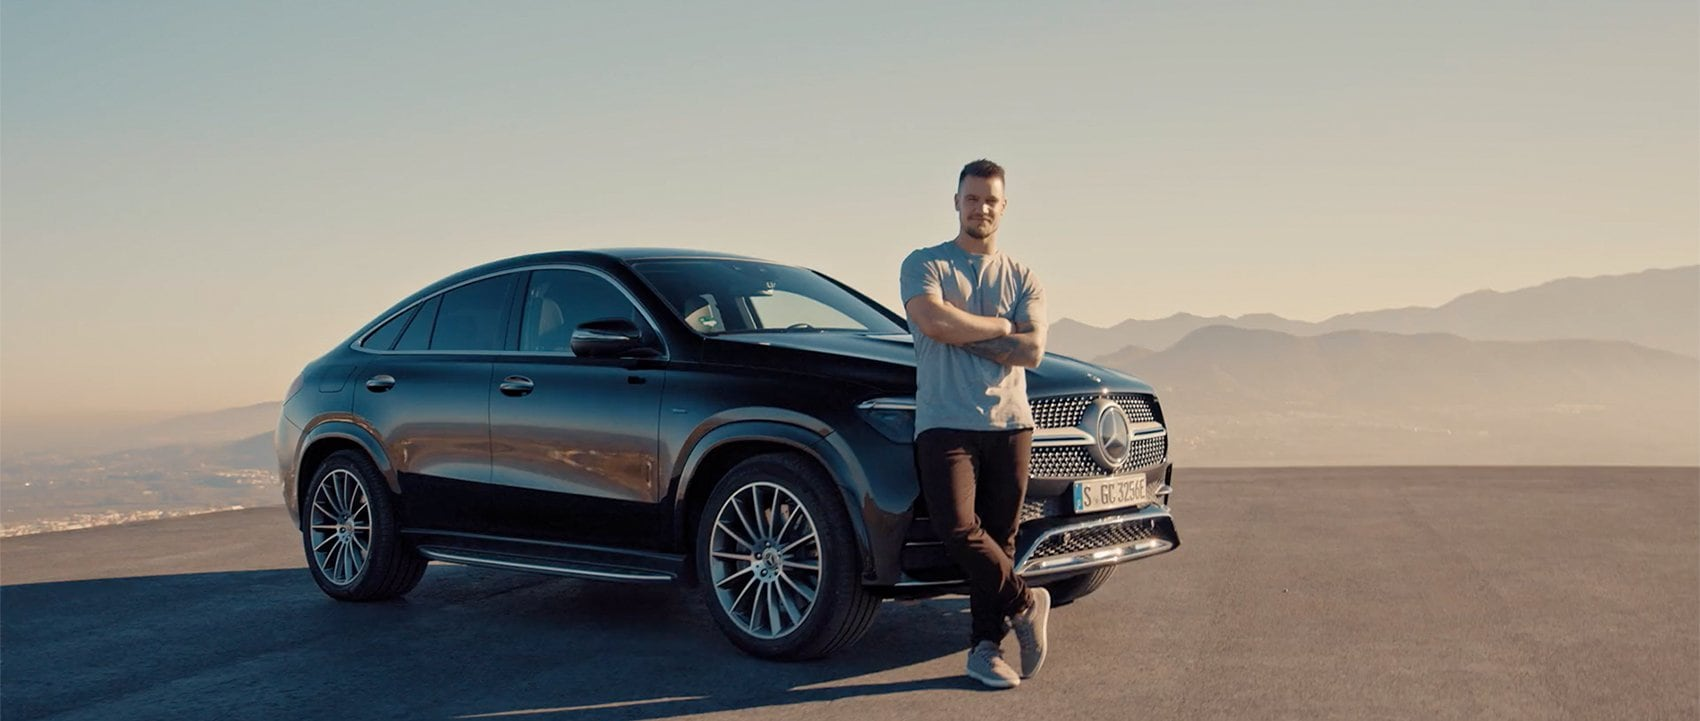 Paul Wallace stands in front of the Mercedes-Benz GLE Coupé.